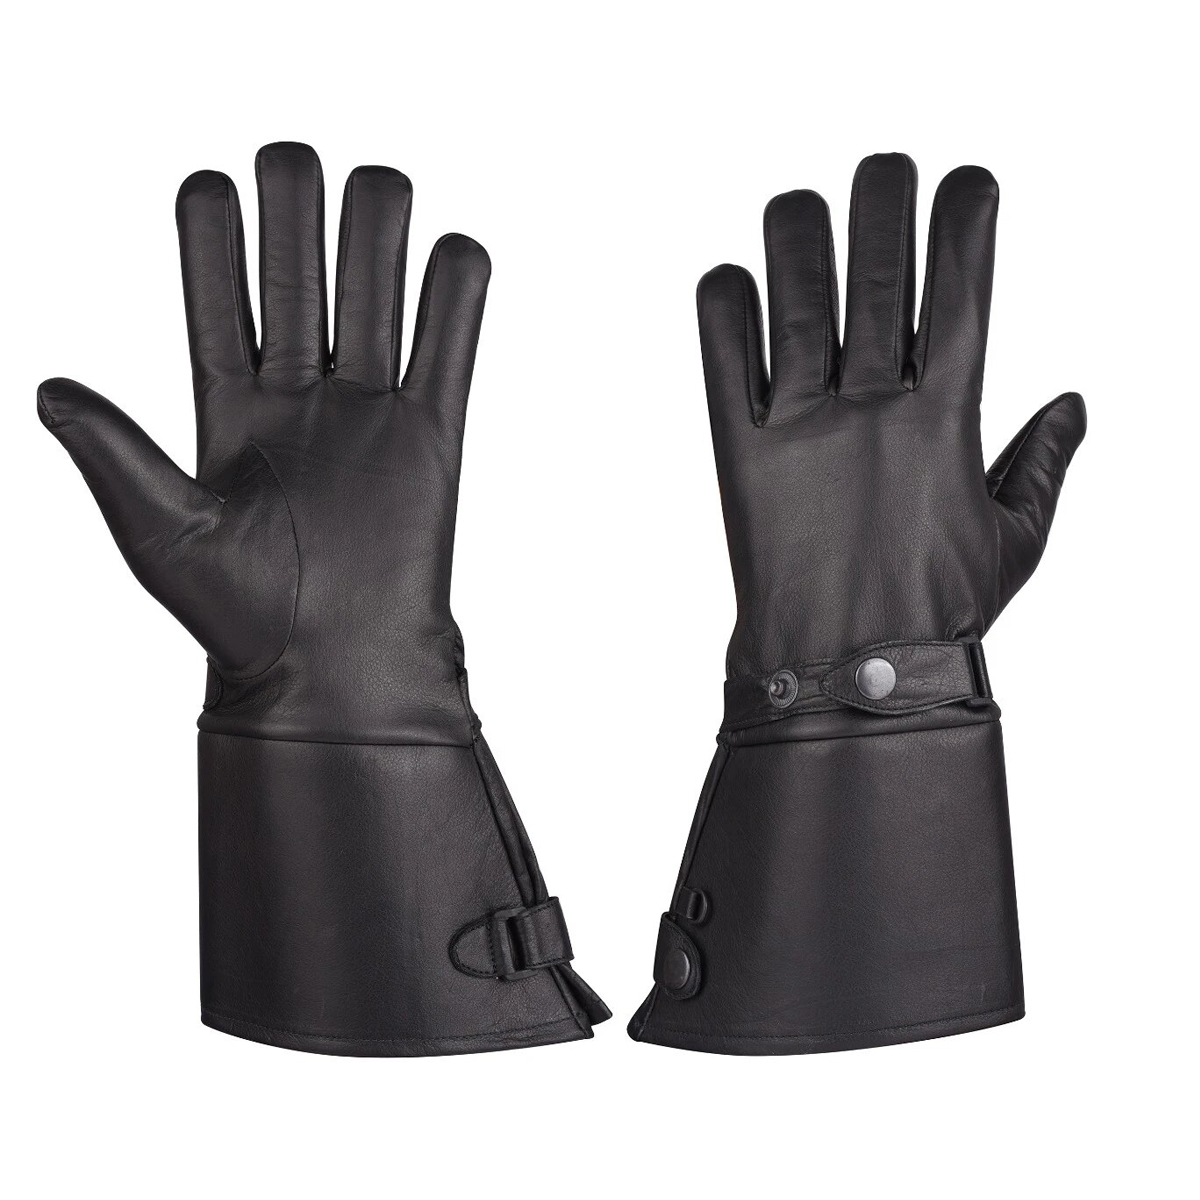 MEN'S THERMAL LINED LEATHER GAUNTLET GLOVES W SNAP WRIST & CUFF